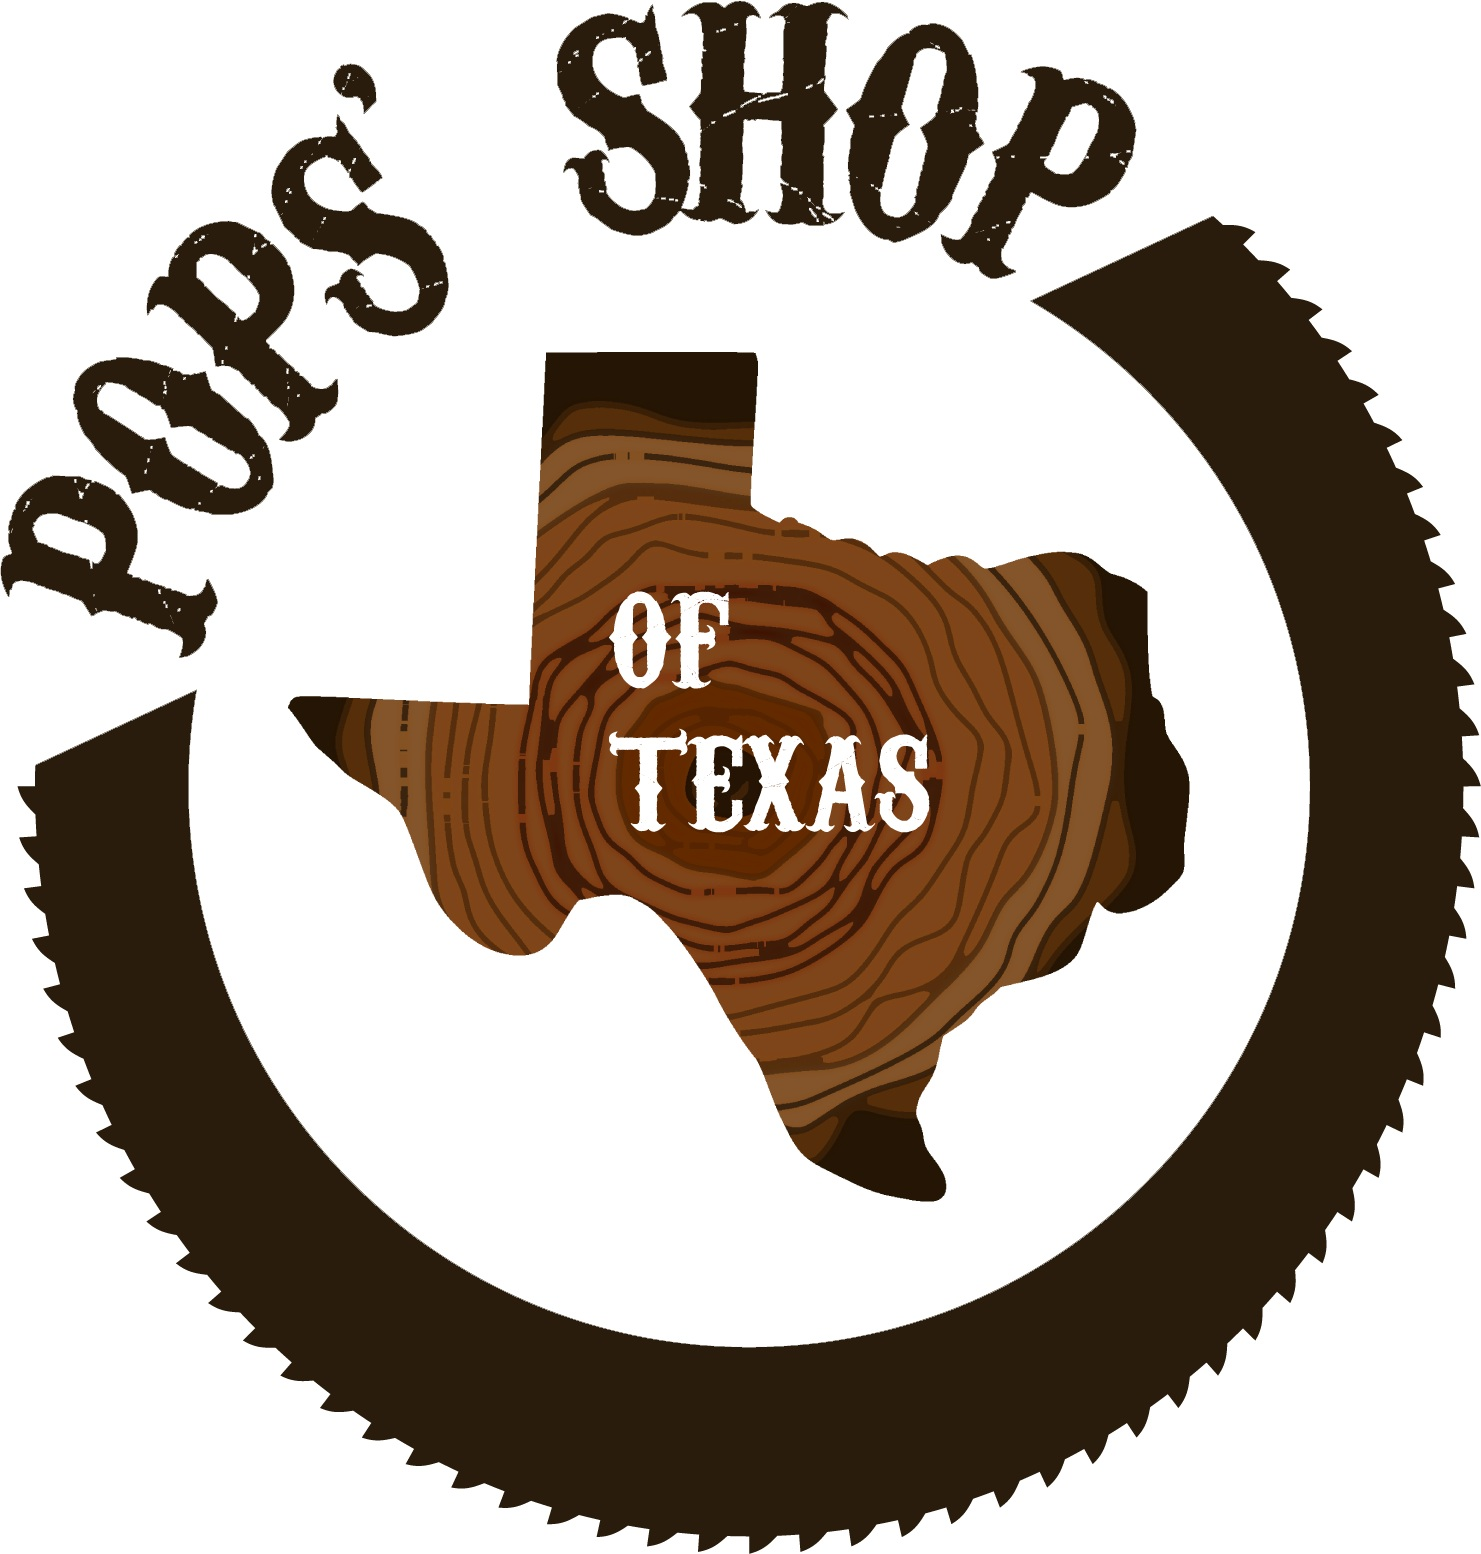 Pop's Shop of Texas